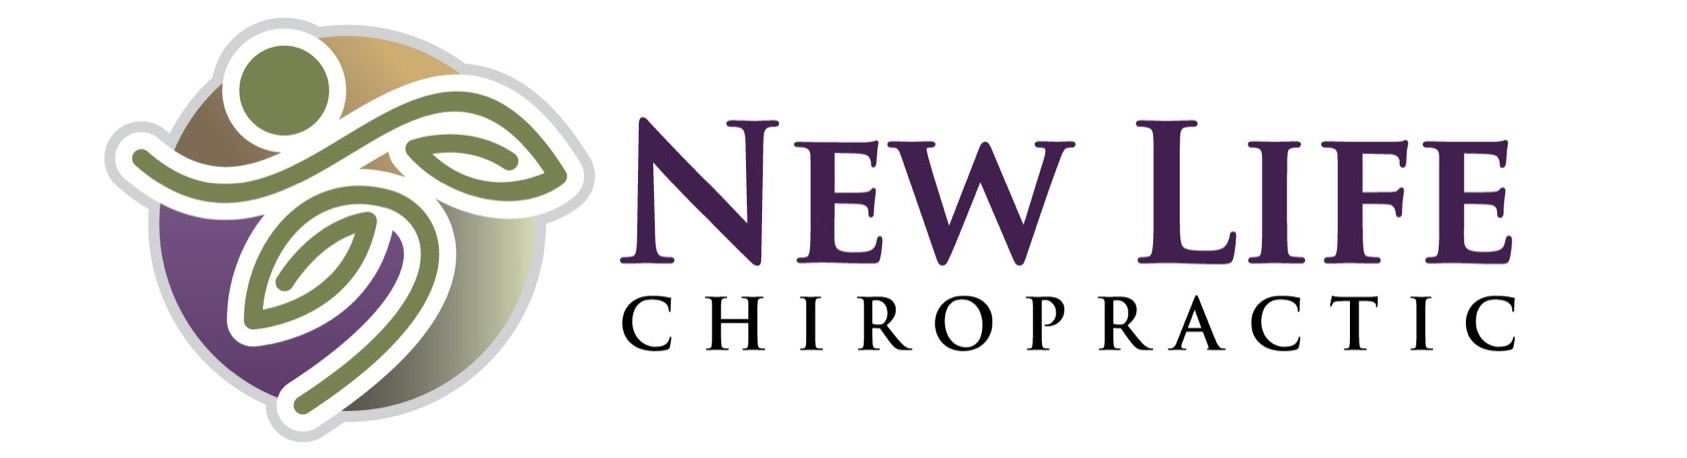 New Life Chiropractic – Virginia Beach